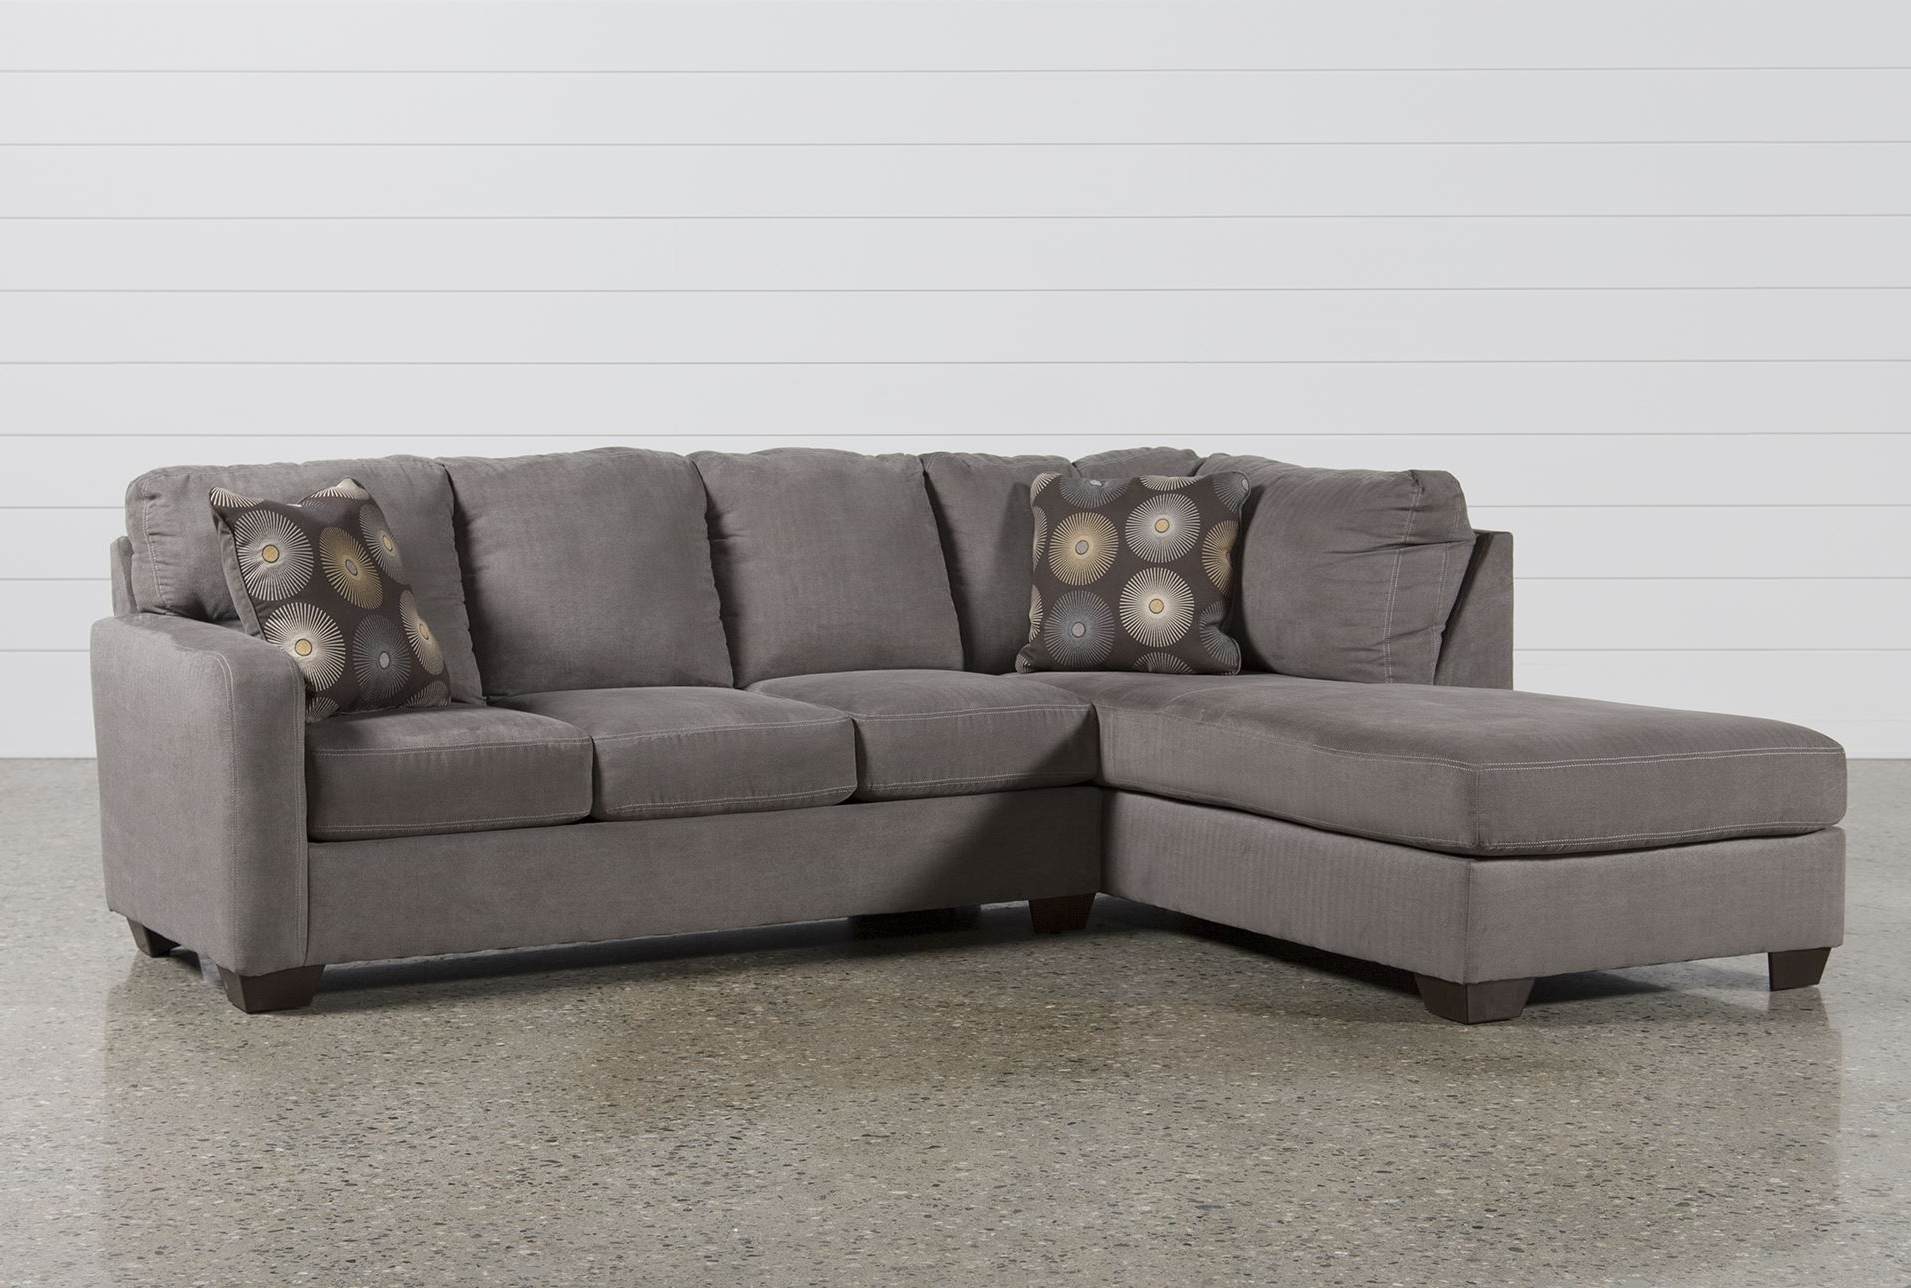 Gray Sectionals With Chaise Pertaining To Popular Sofa ~ Luxury Leather Sofa With Chaise Lounge Cute Small Sectional (View 8 of 15)